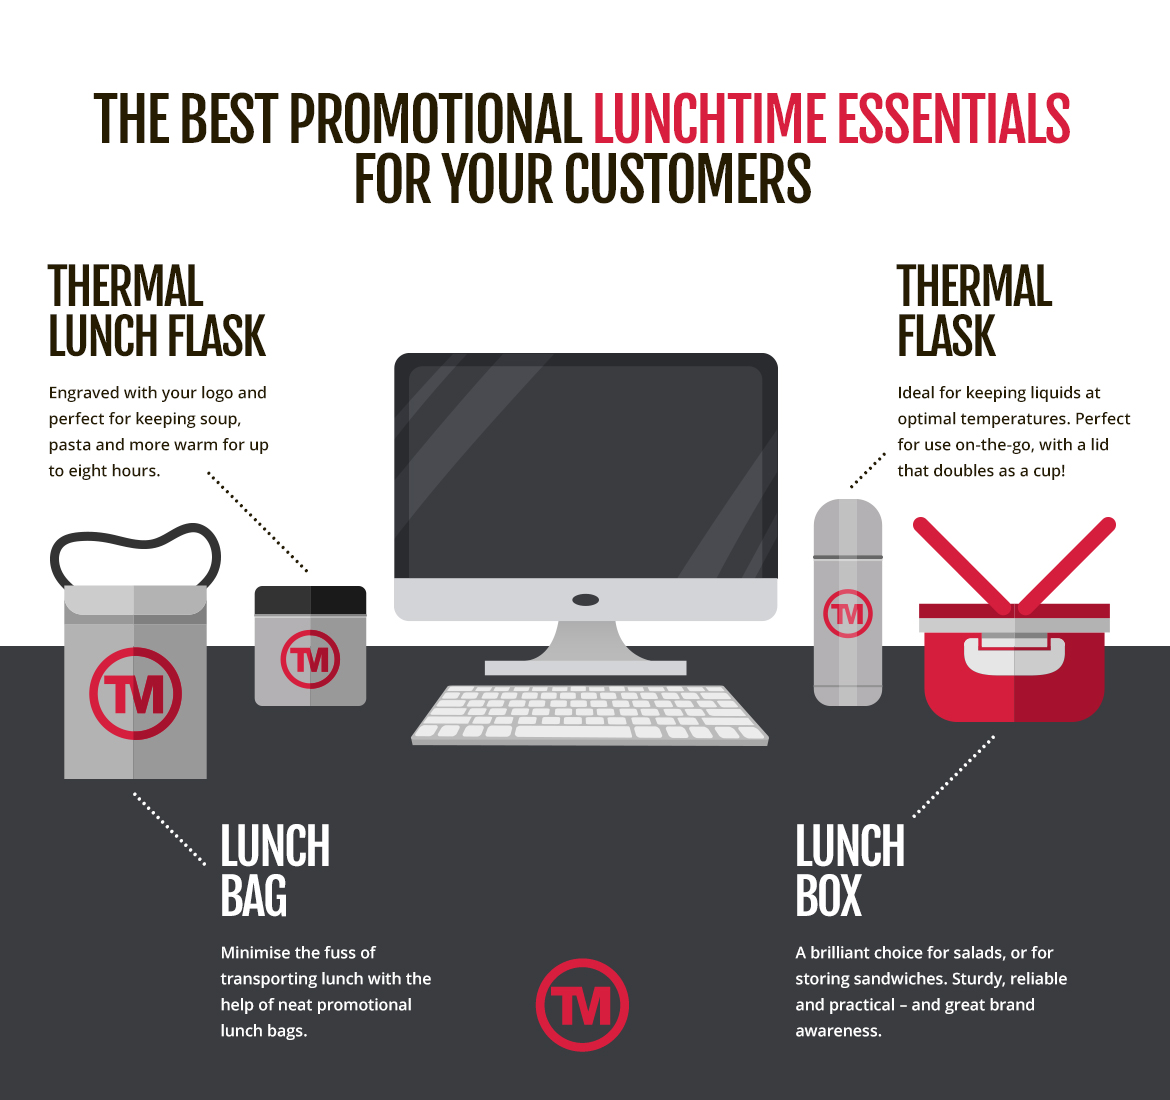 How promotional products can improve lunchtimes